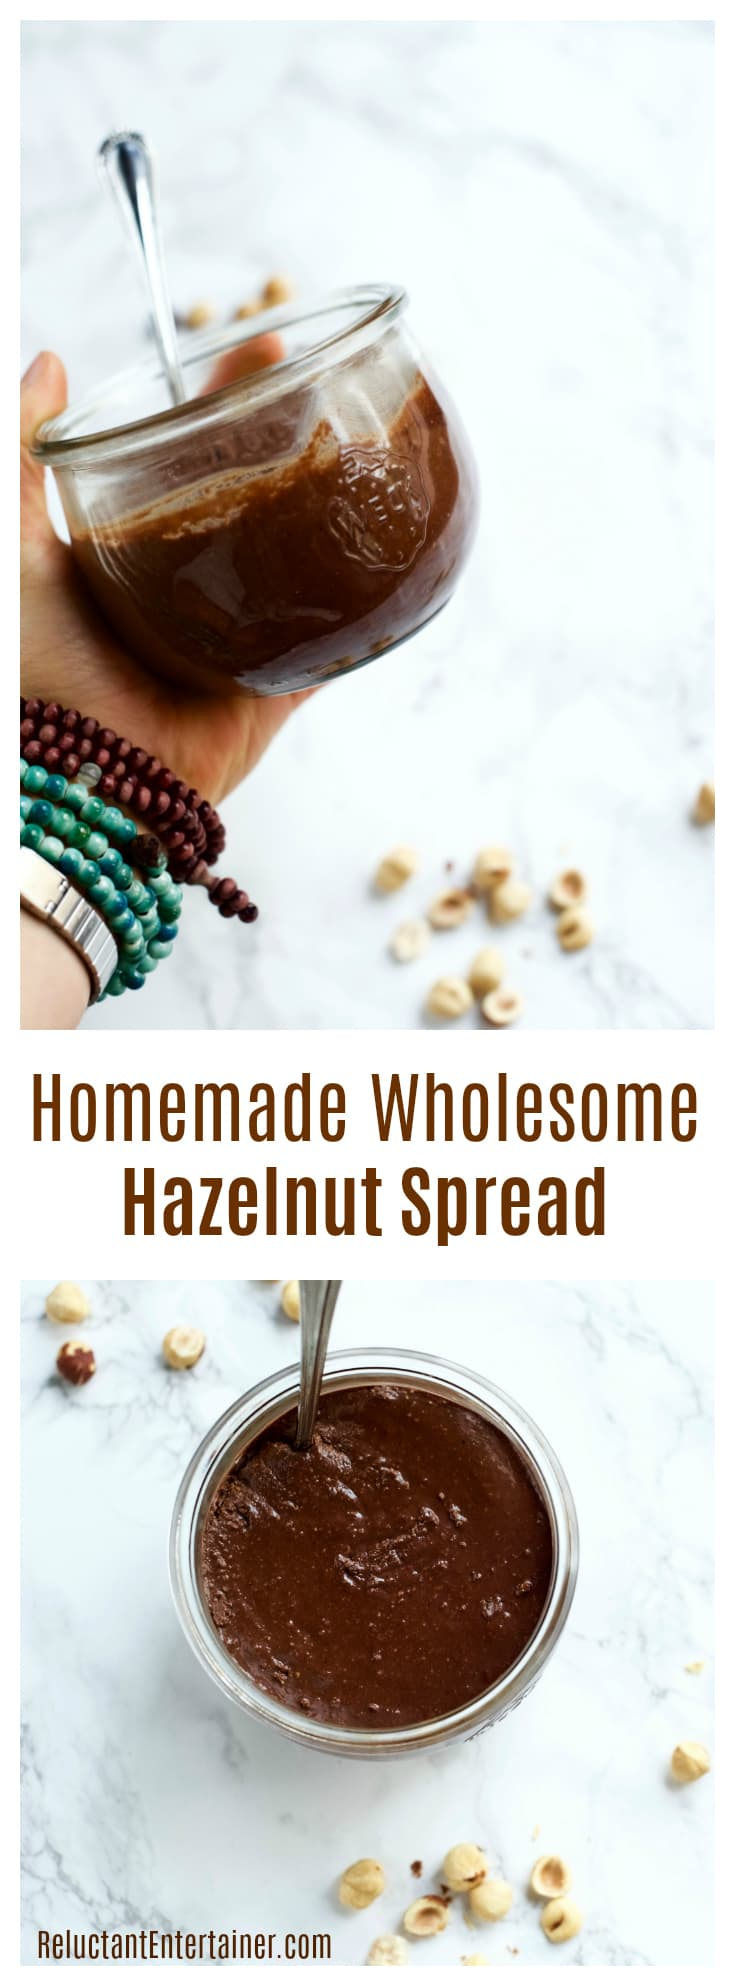 Homemade Wholesome Hazelnut Spread